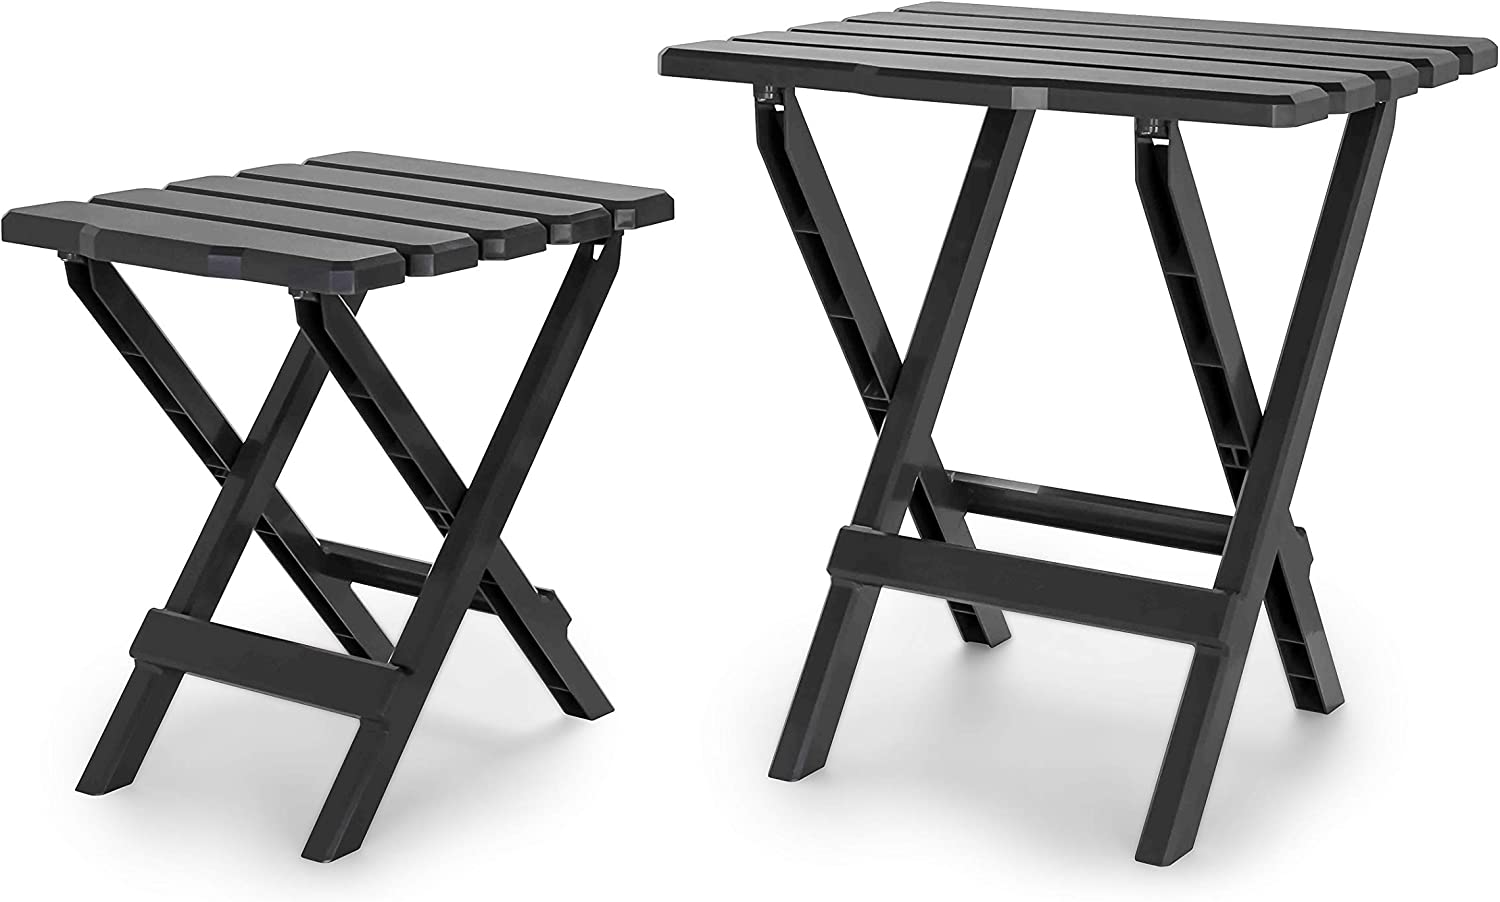 Charcoal Camping Cookouts and More Weatherproof and Rust Resistant Picnics Camco Large Adirondack Portable Outdoor Folding Side Table Perfect for The Beach 21047